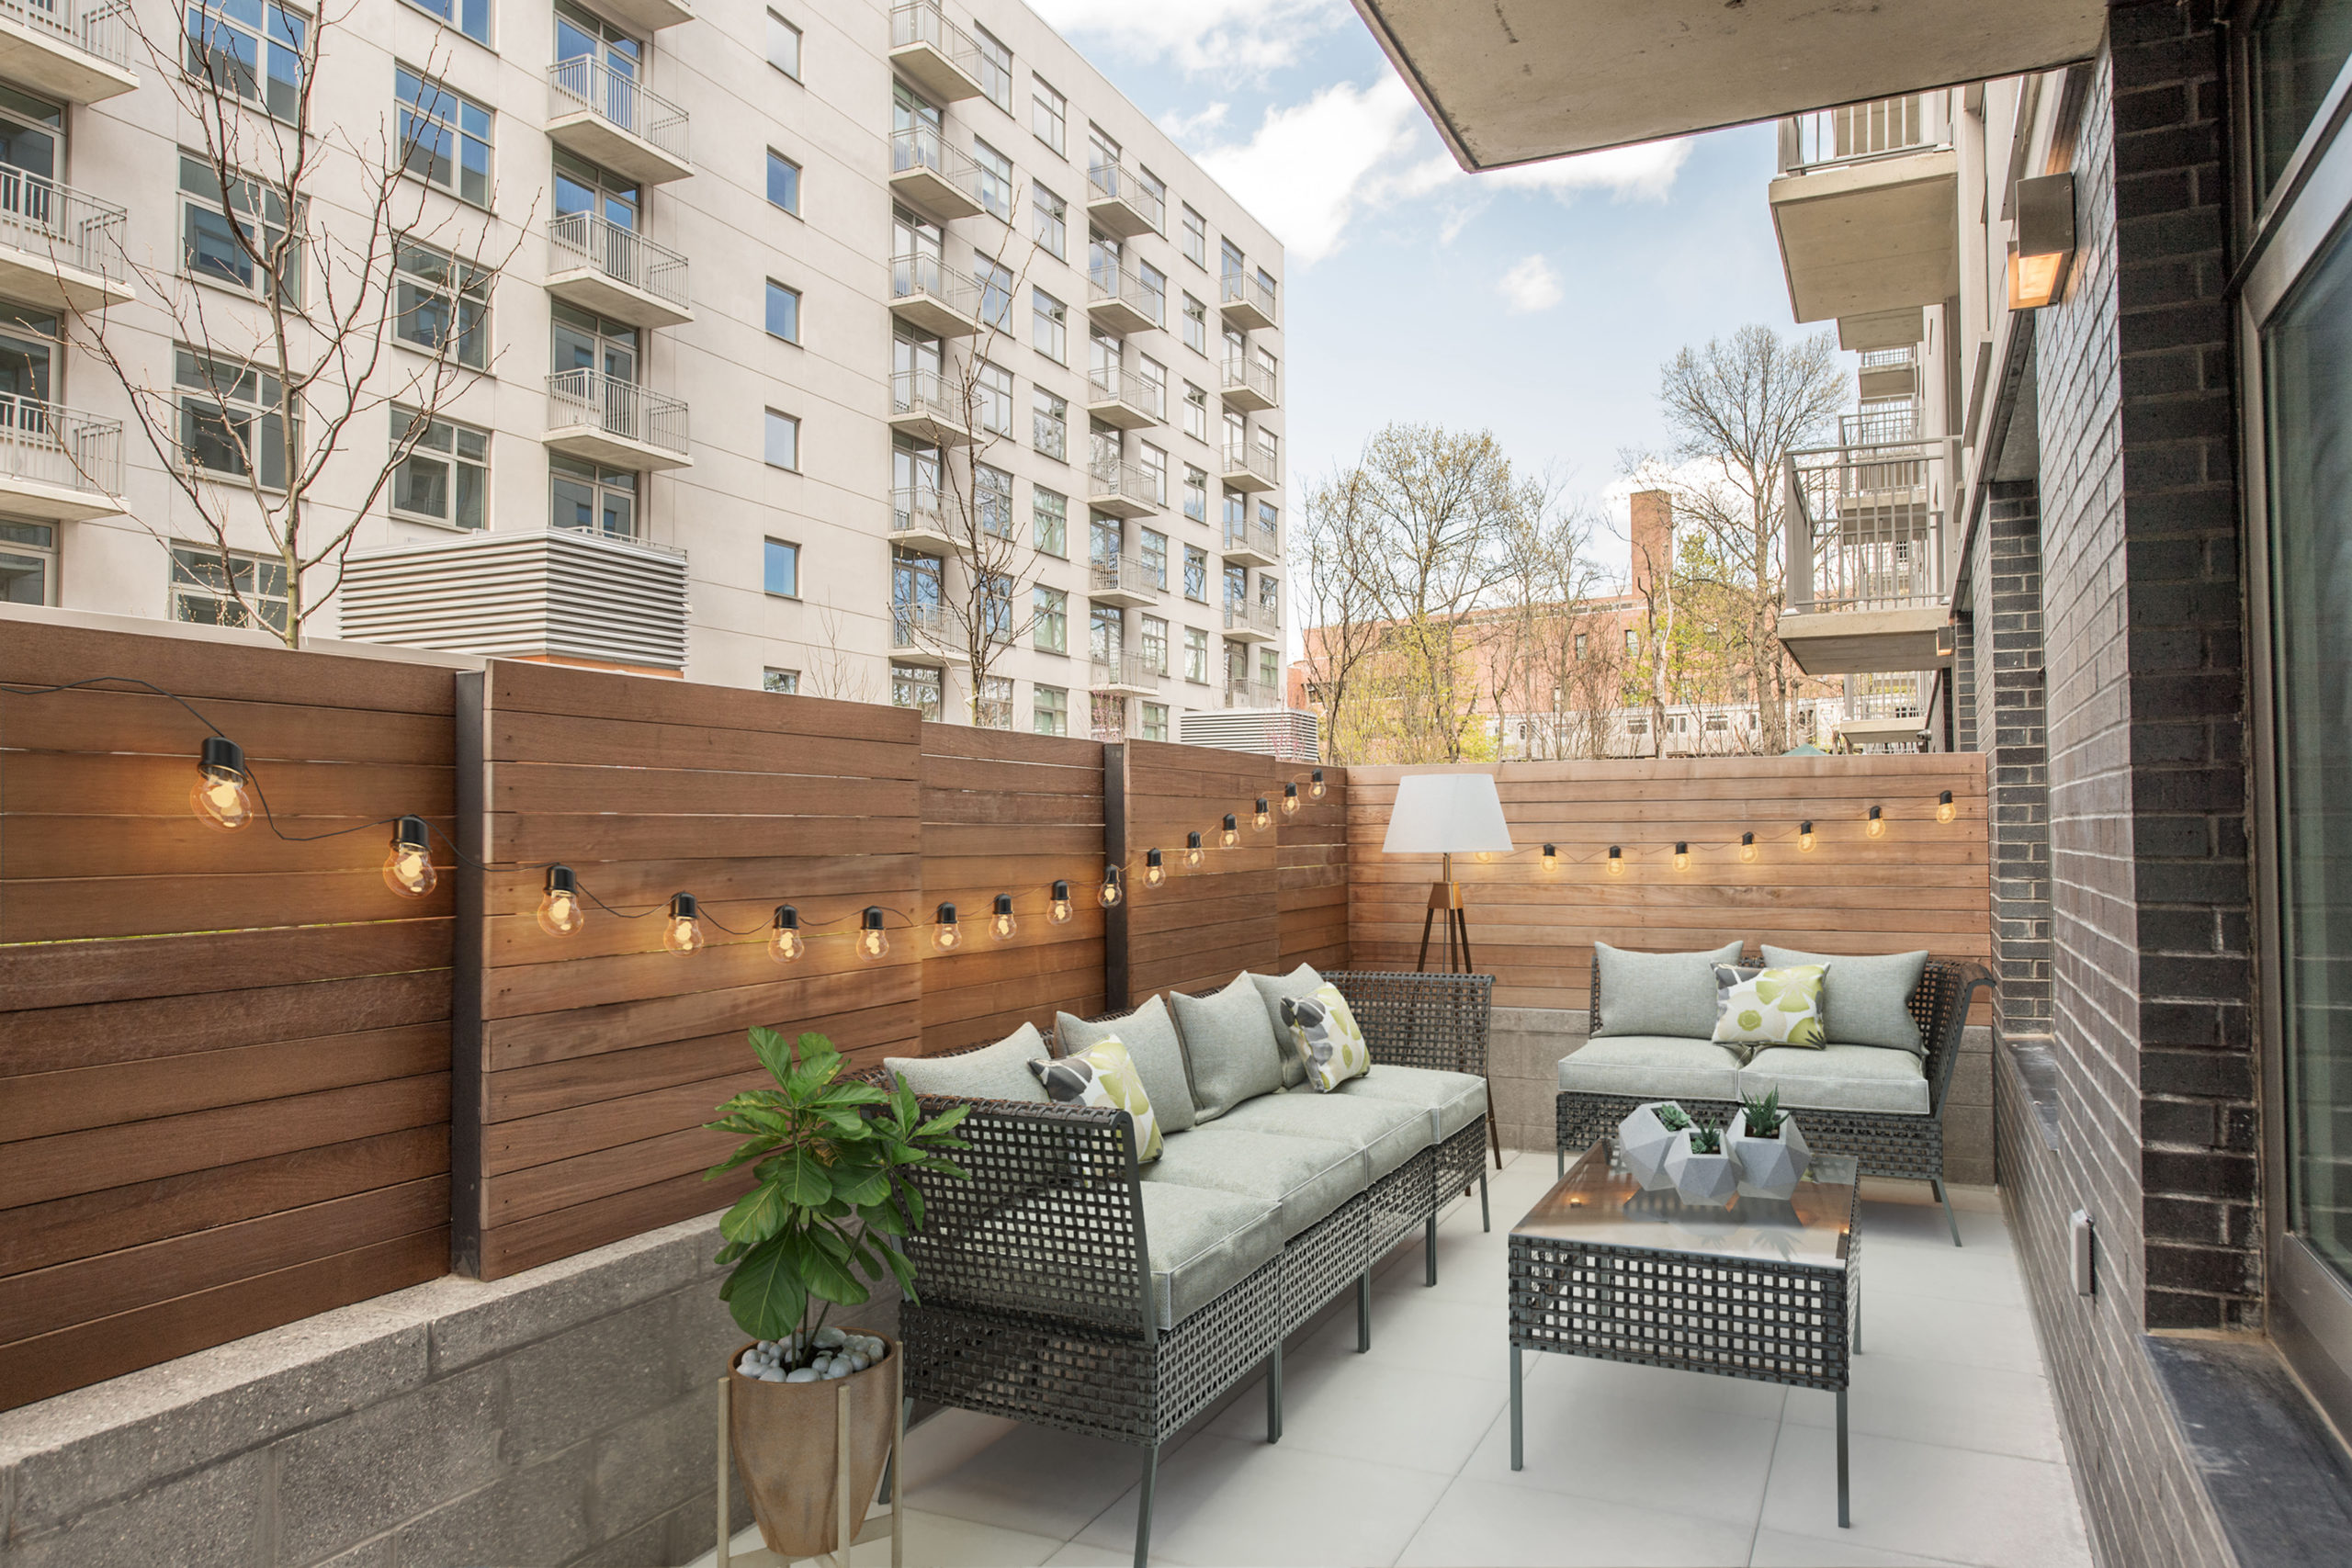 An outdoor patio with luxurious patio furniture at The Vitagraph in Brooklyn, NY